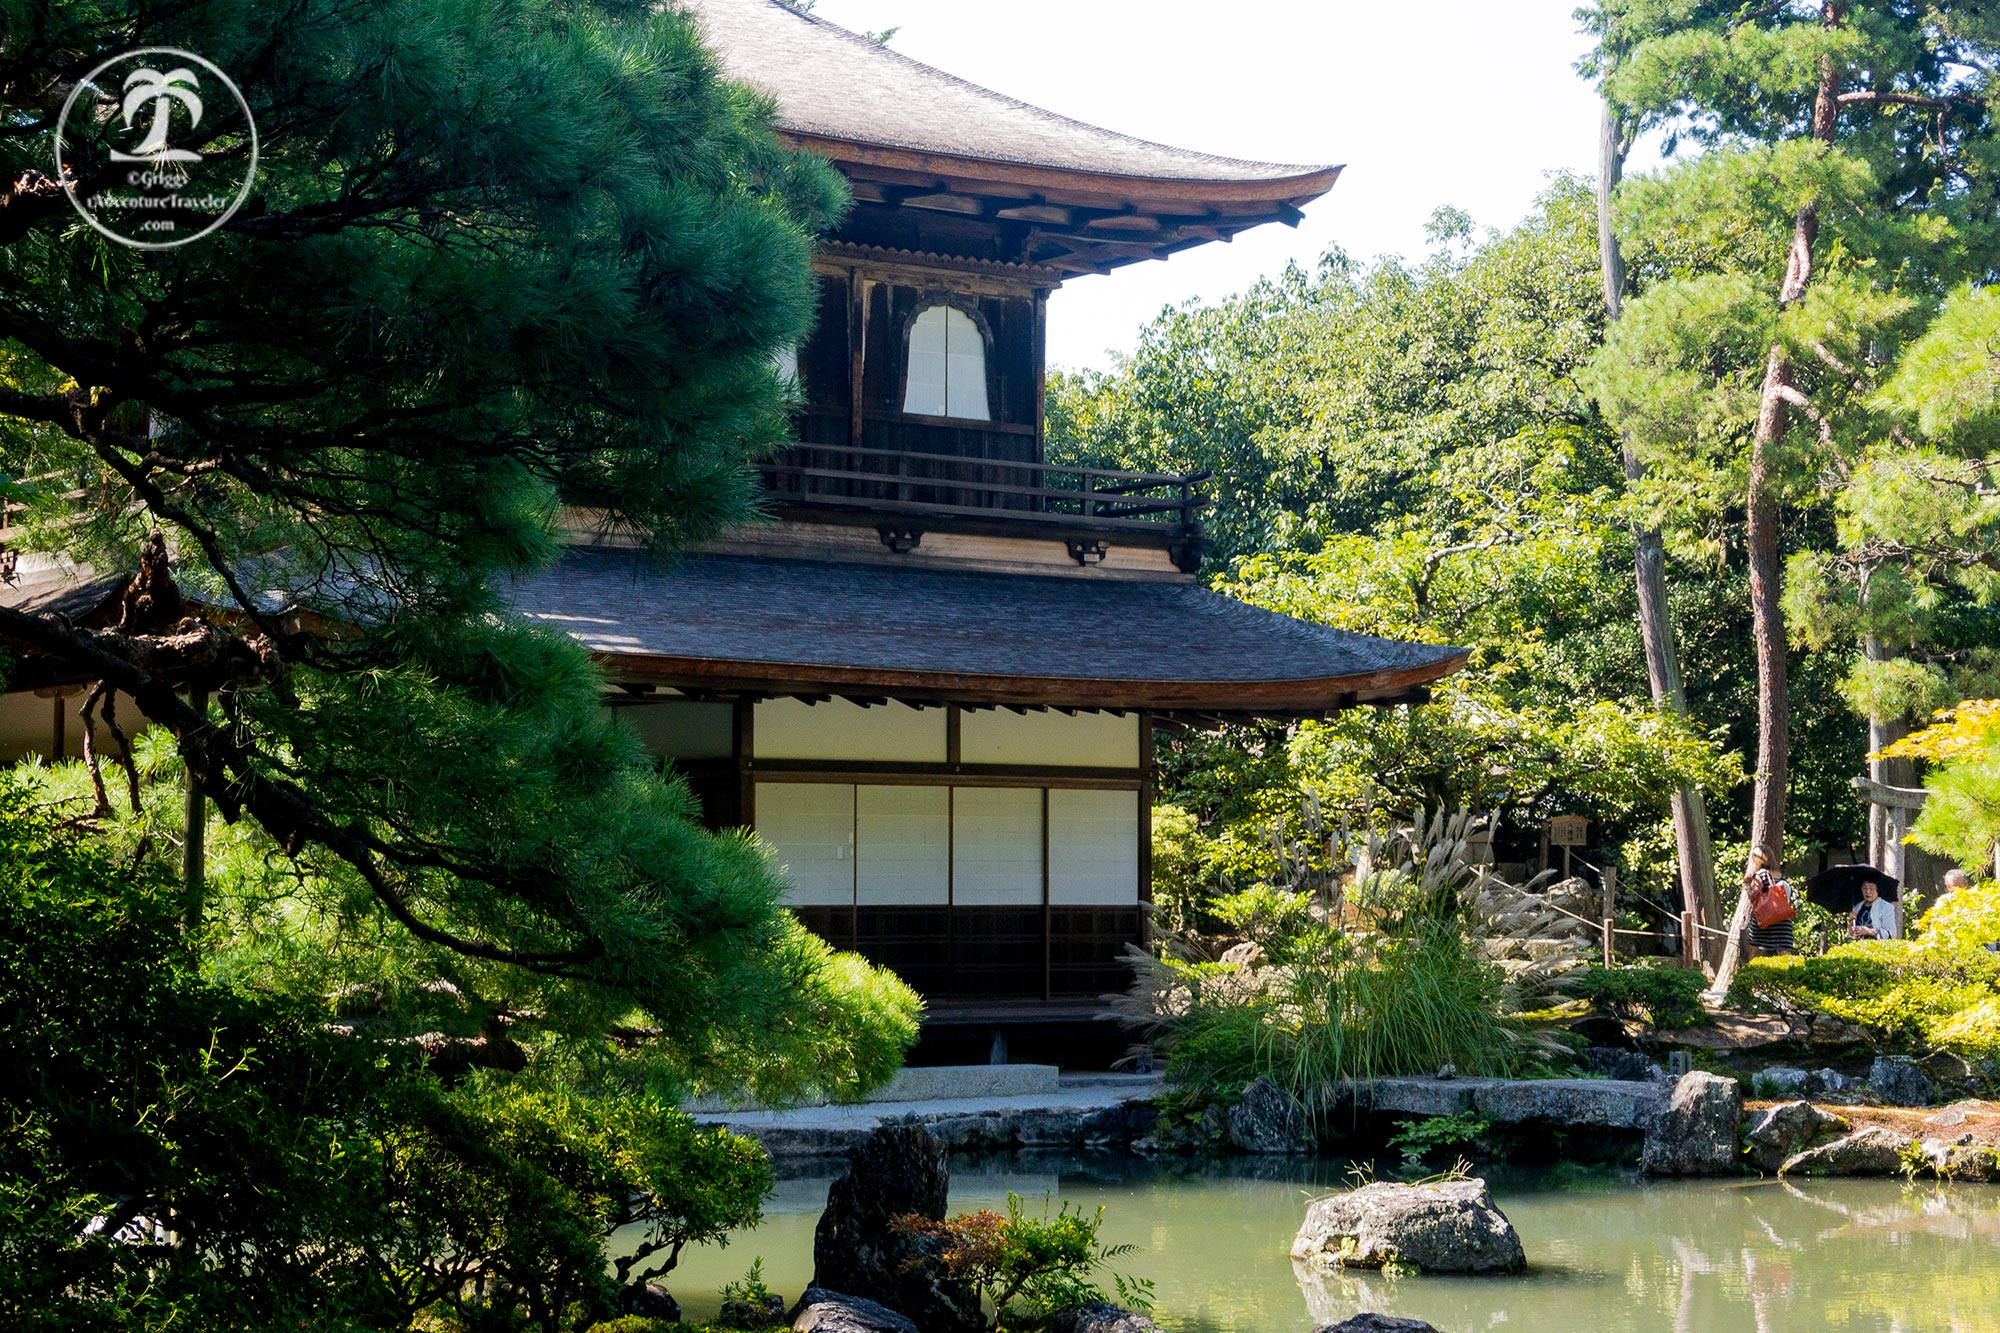 The Best Places To Travel By Month - April for Japanese garden in Kyoto